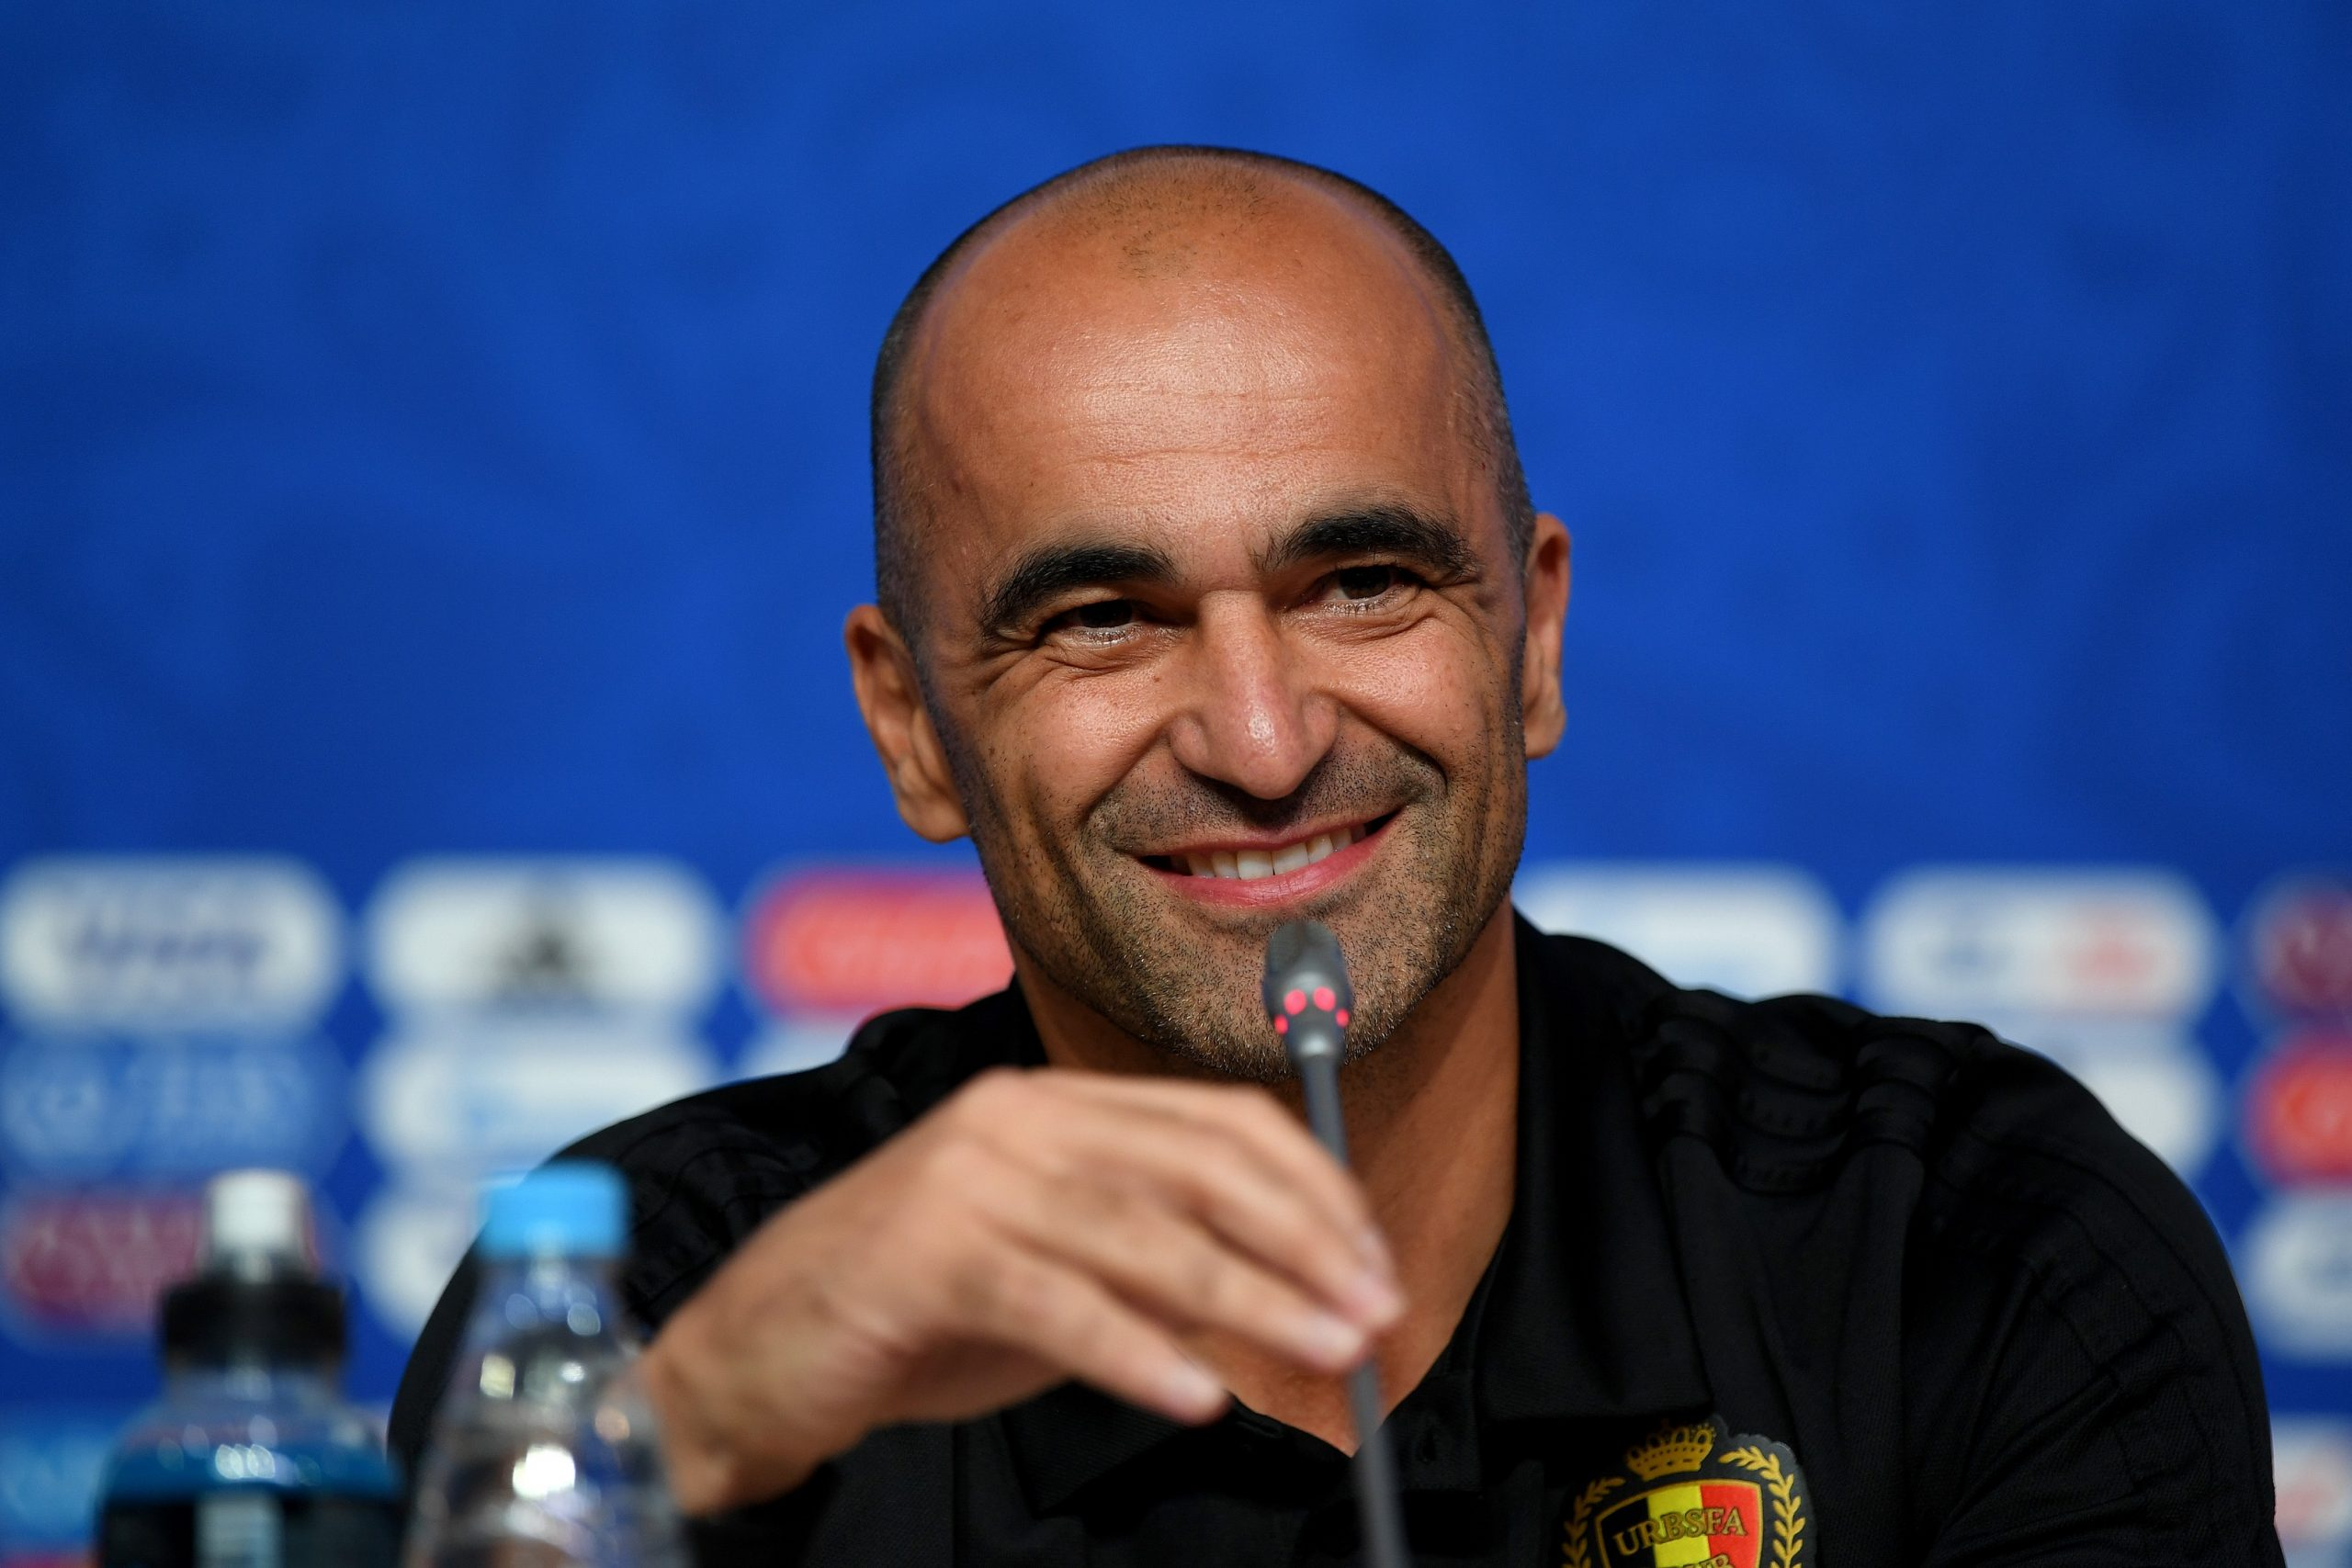 Roberto Martinez, former Everton manager, could be in line to become the next Tottenham Hotspur boss.